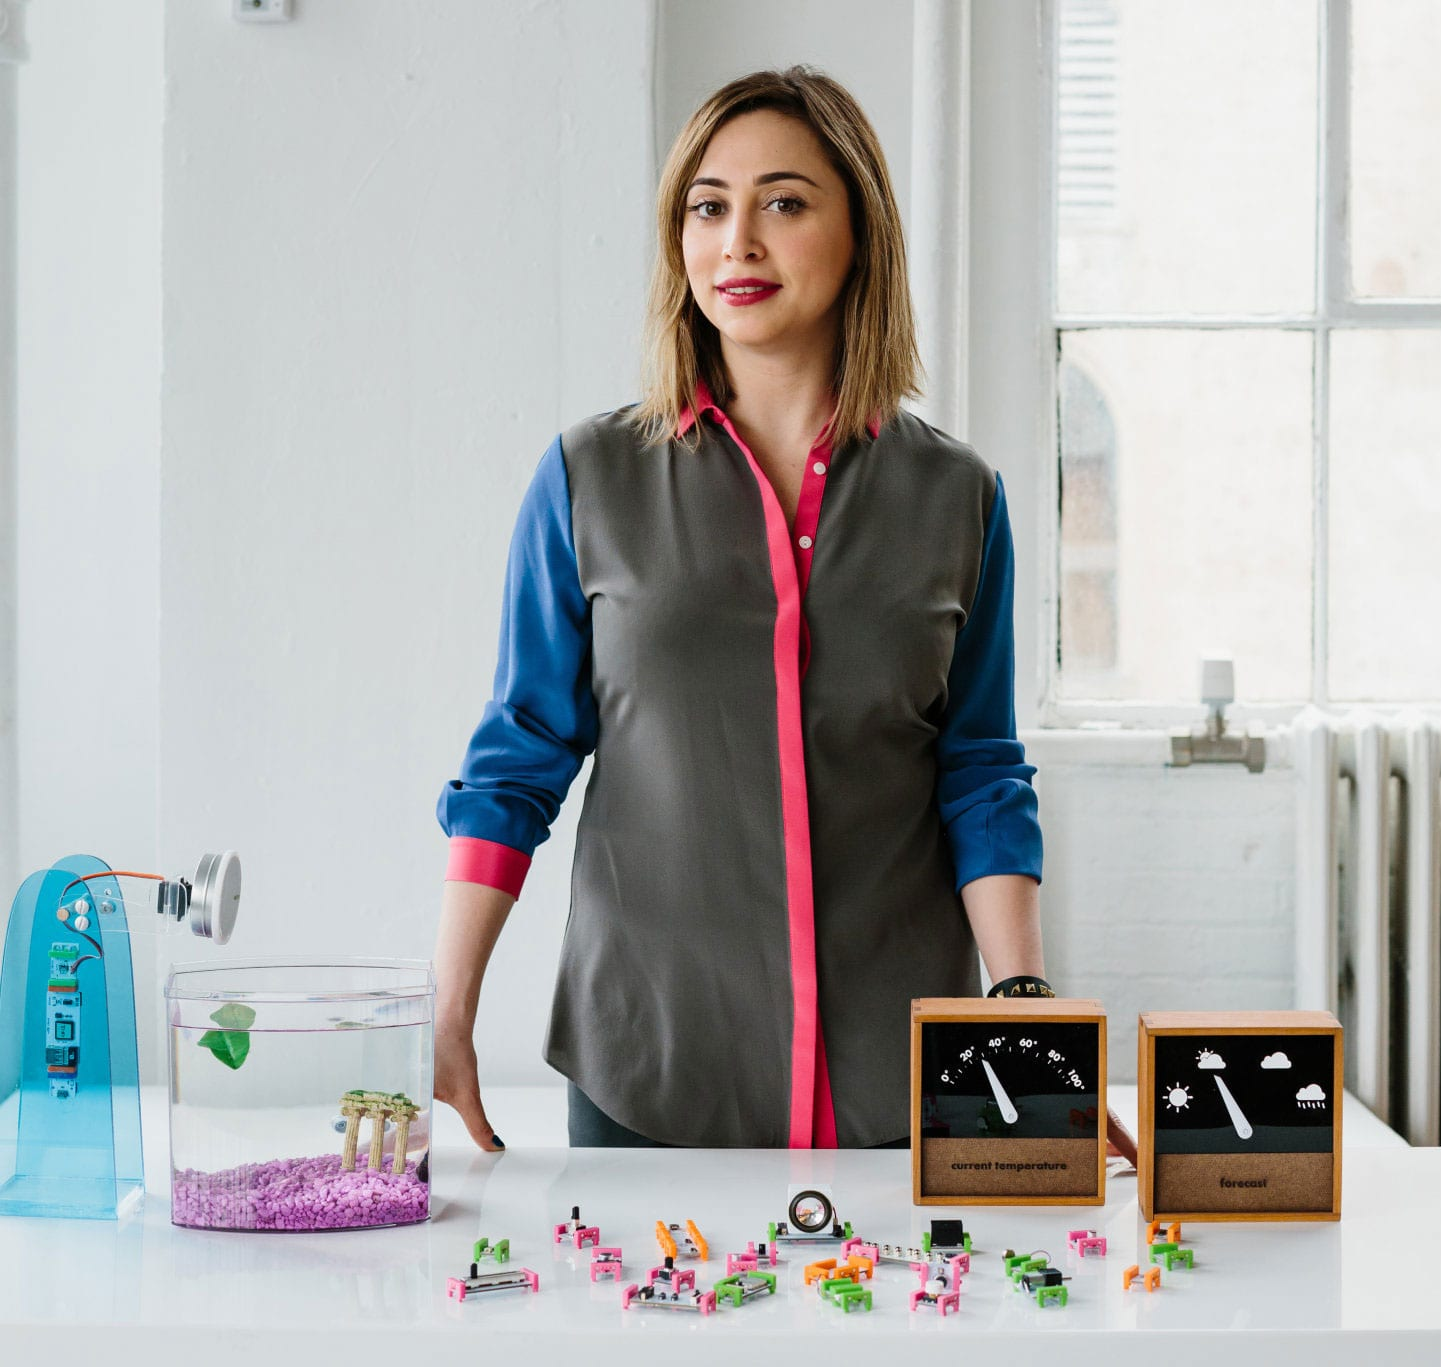 Littlebits ayah bdeir